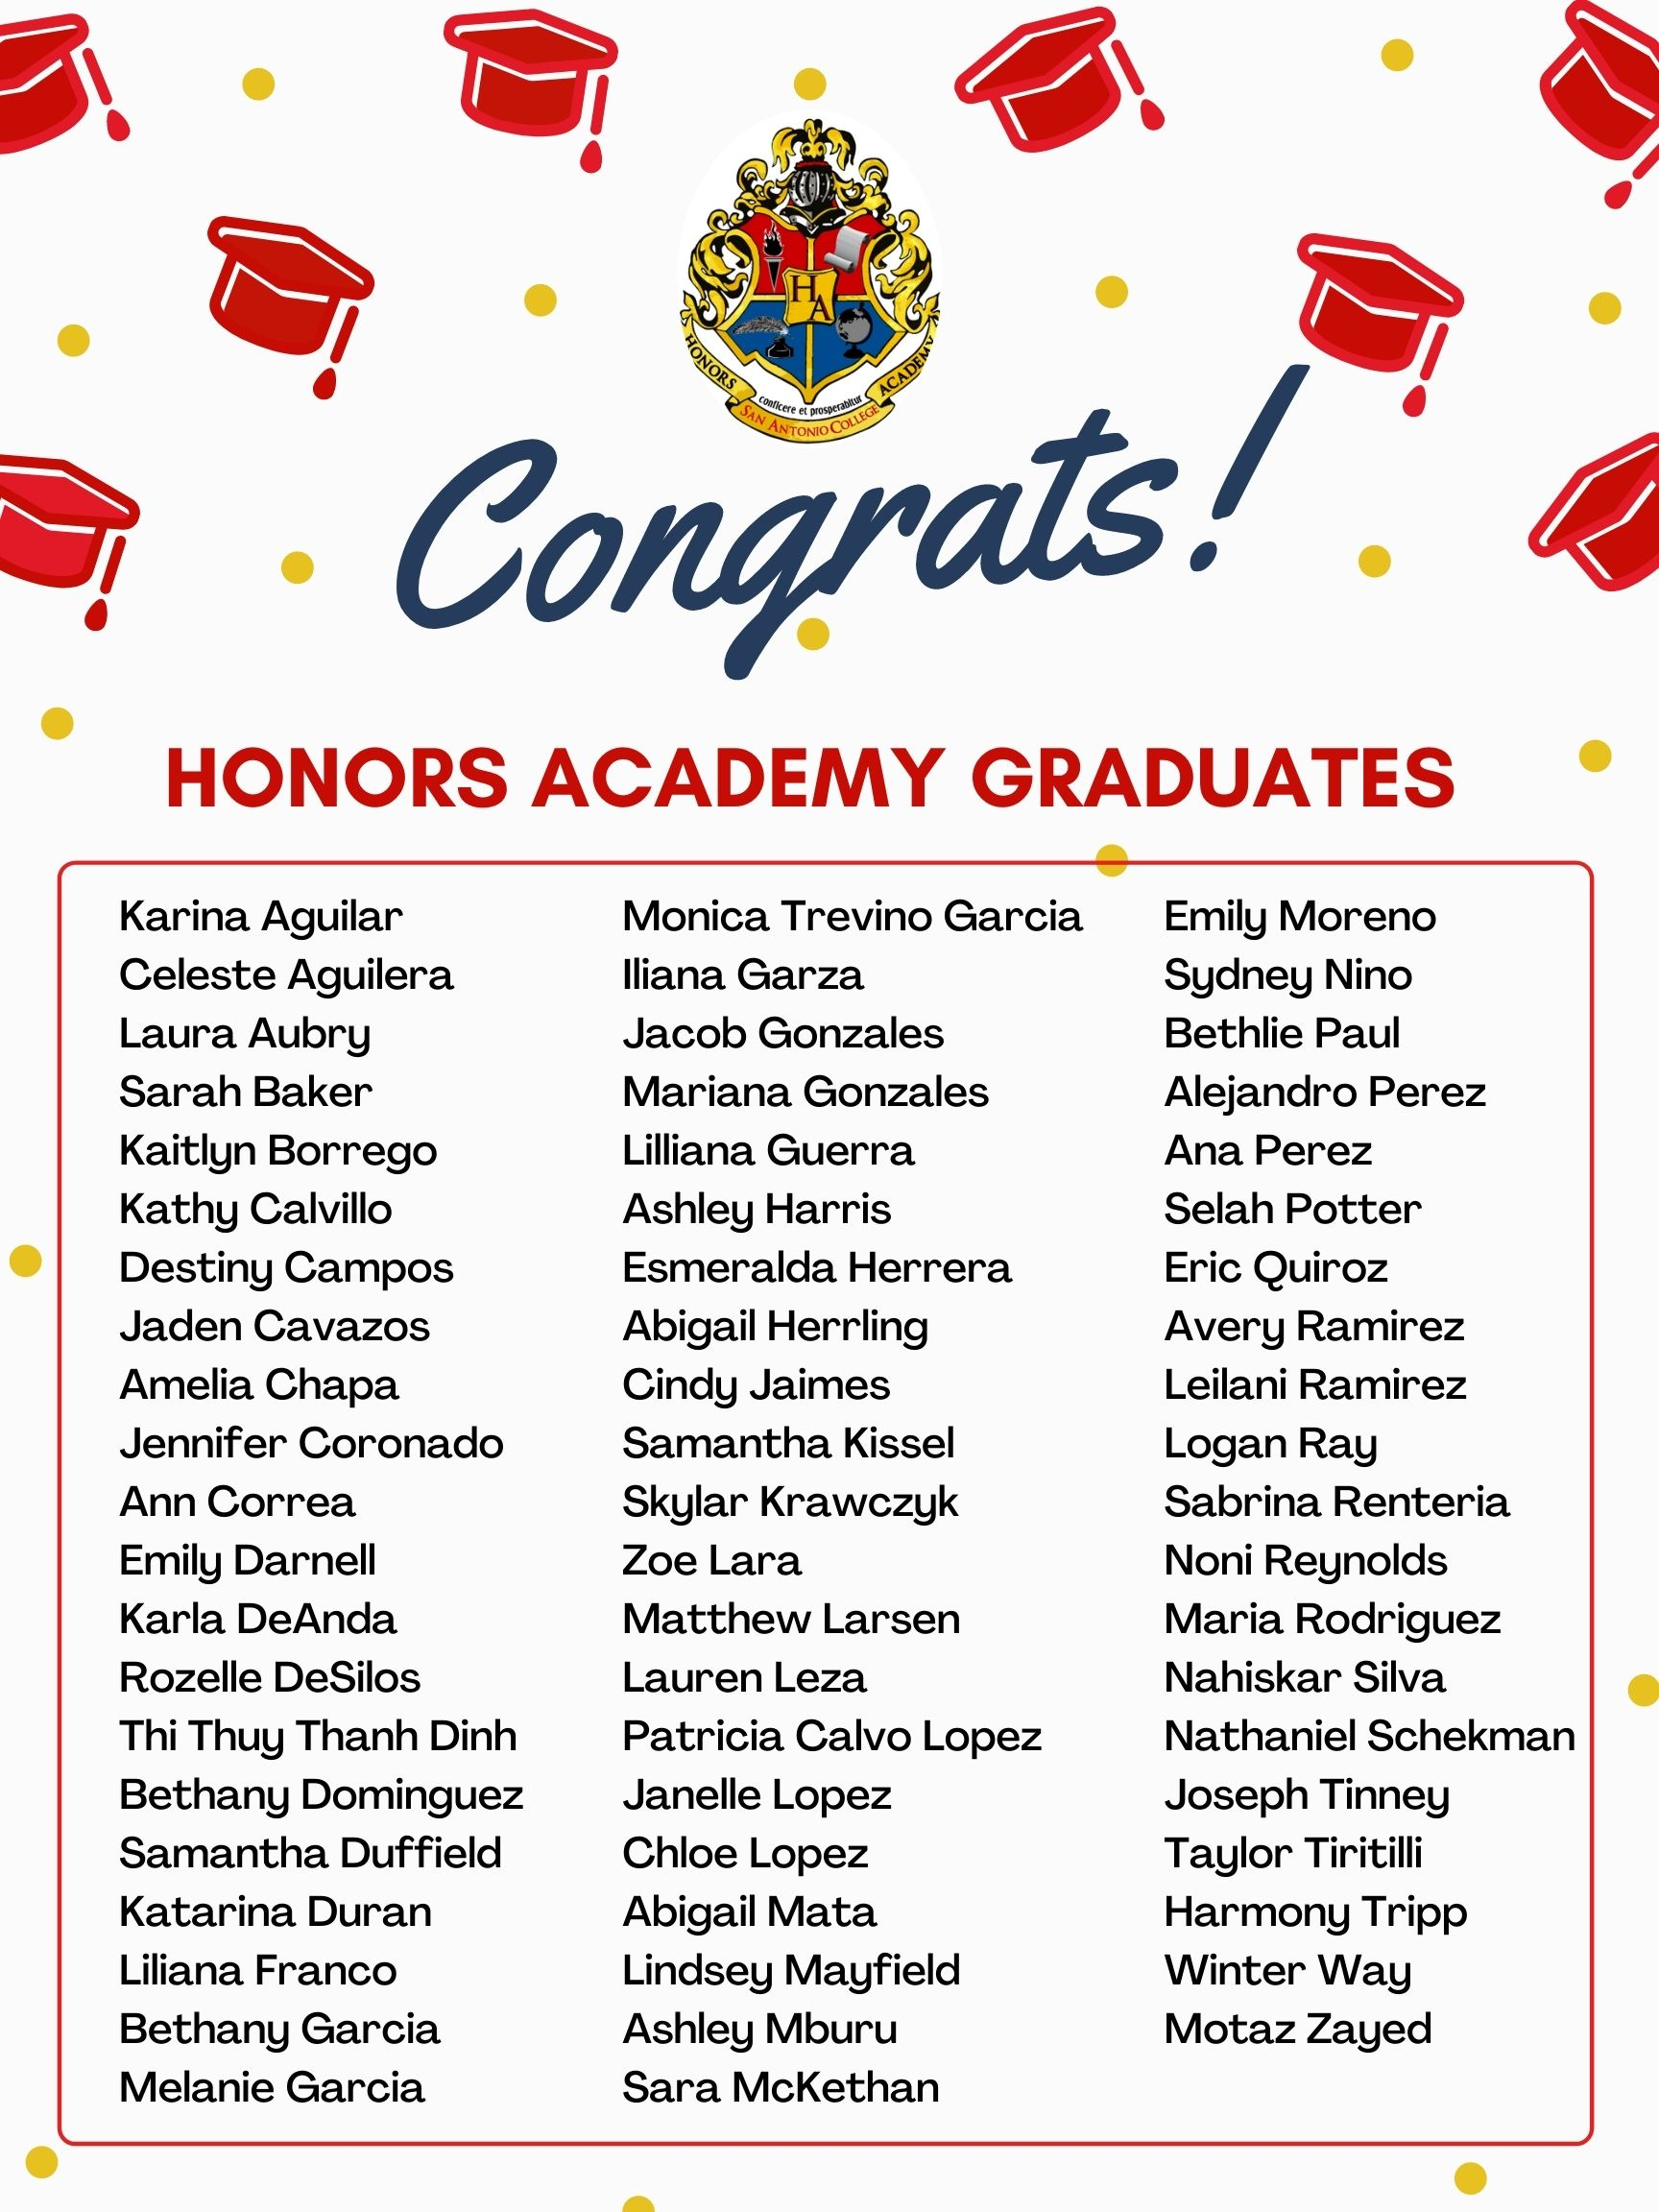 List of Recent Honors Academy Graduates